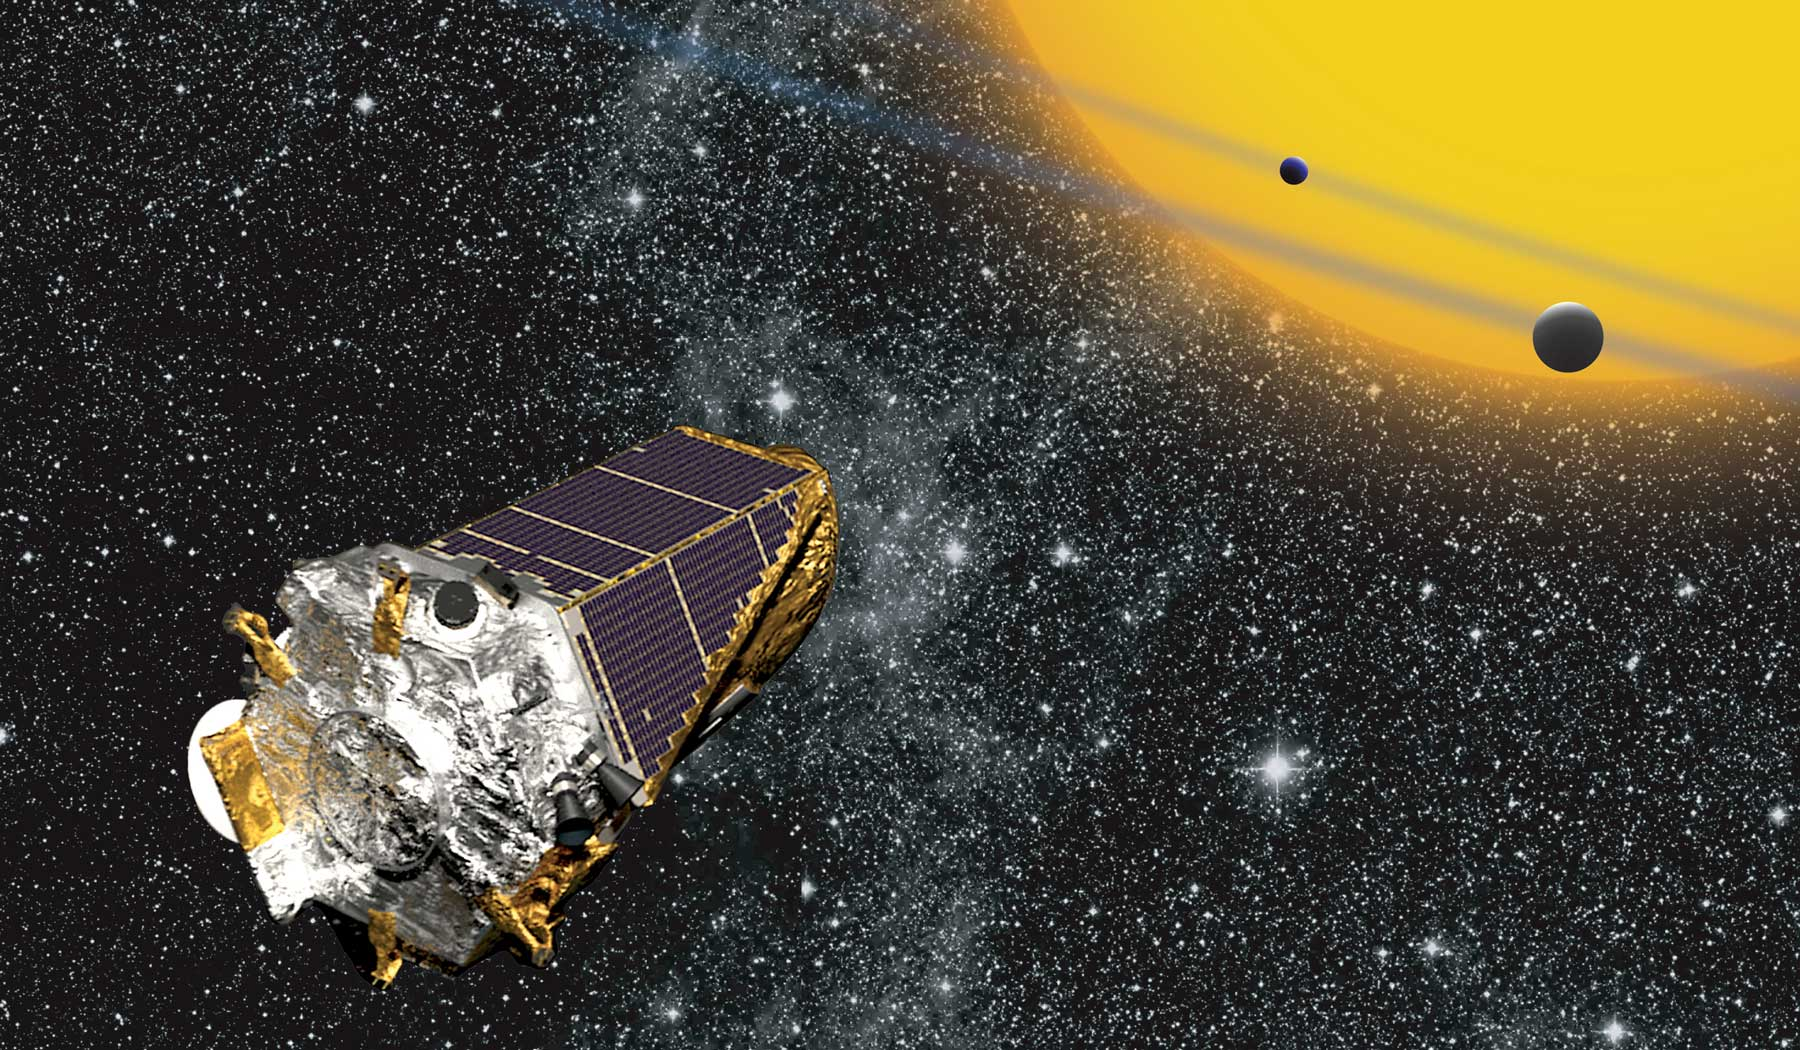 An artist's rendition of the Kepler Space Telescope.